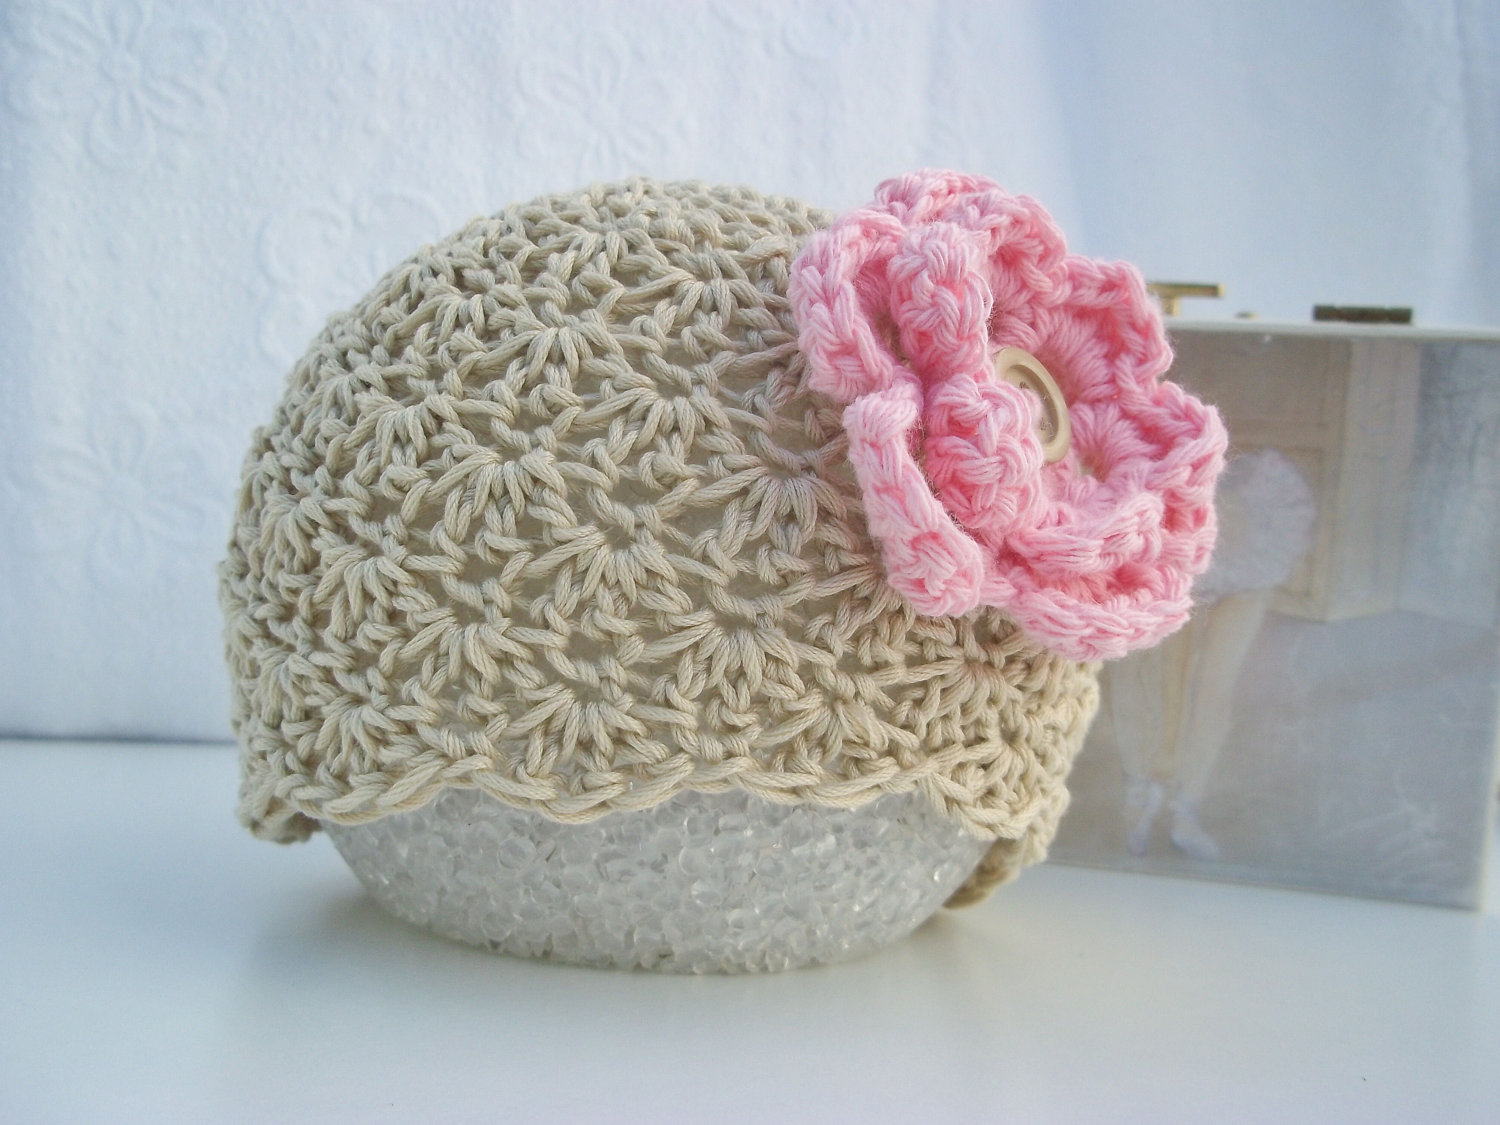 Free Crochet Pattern For A Newborn Hat : Crochet baby hat Baby girl hat Newborn baby hat Beige Tan ...